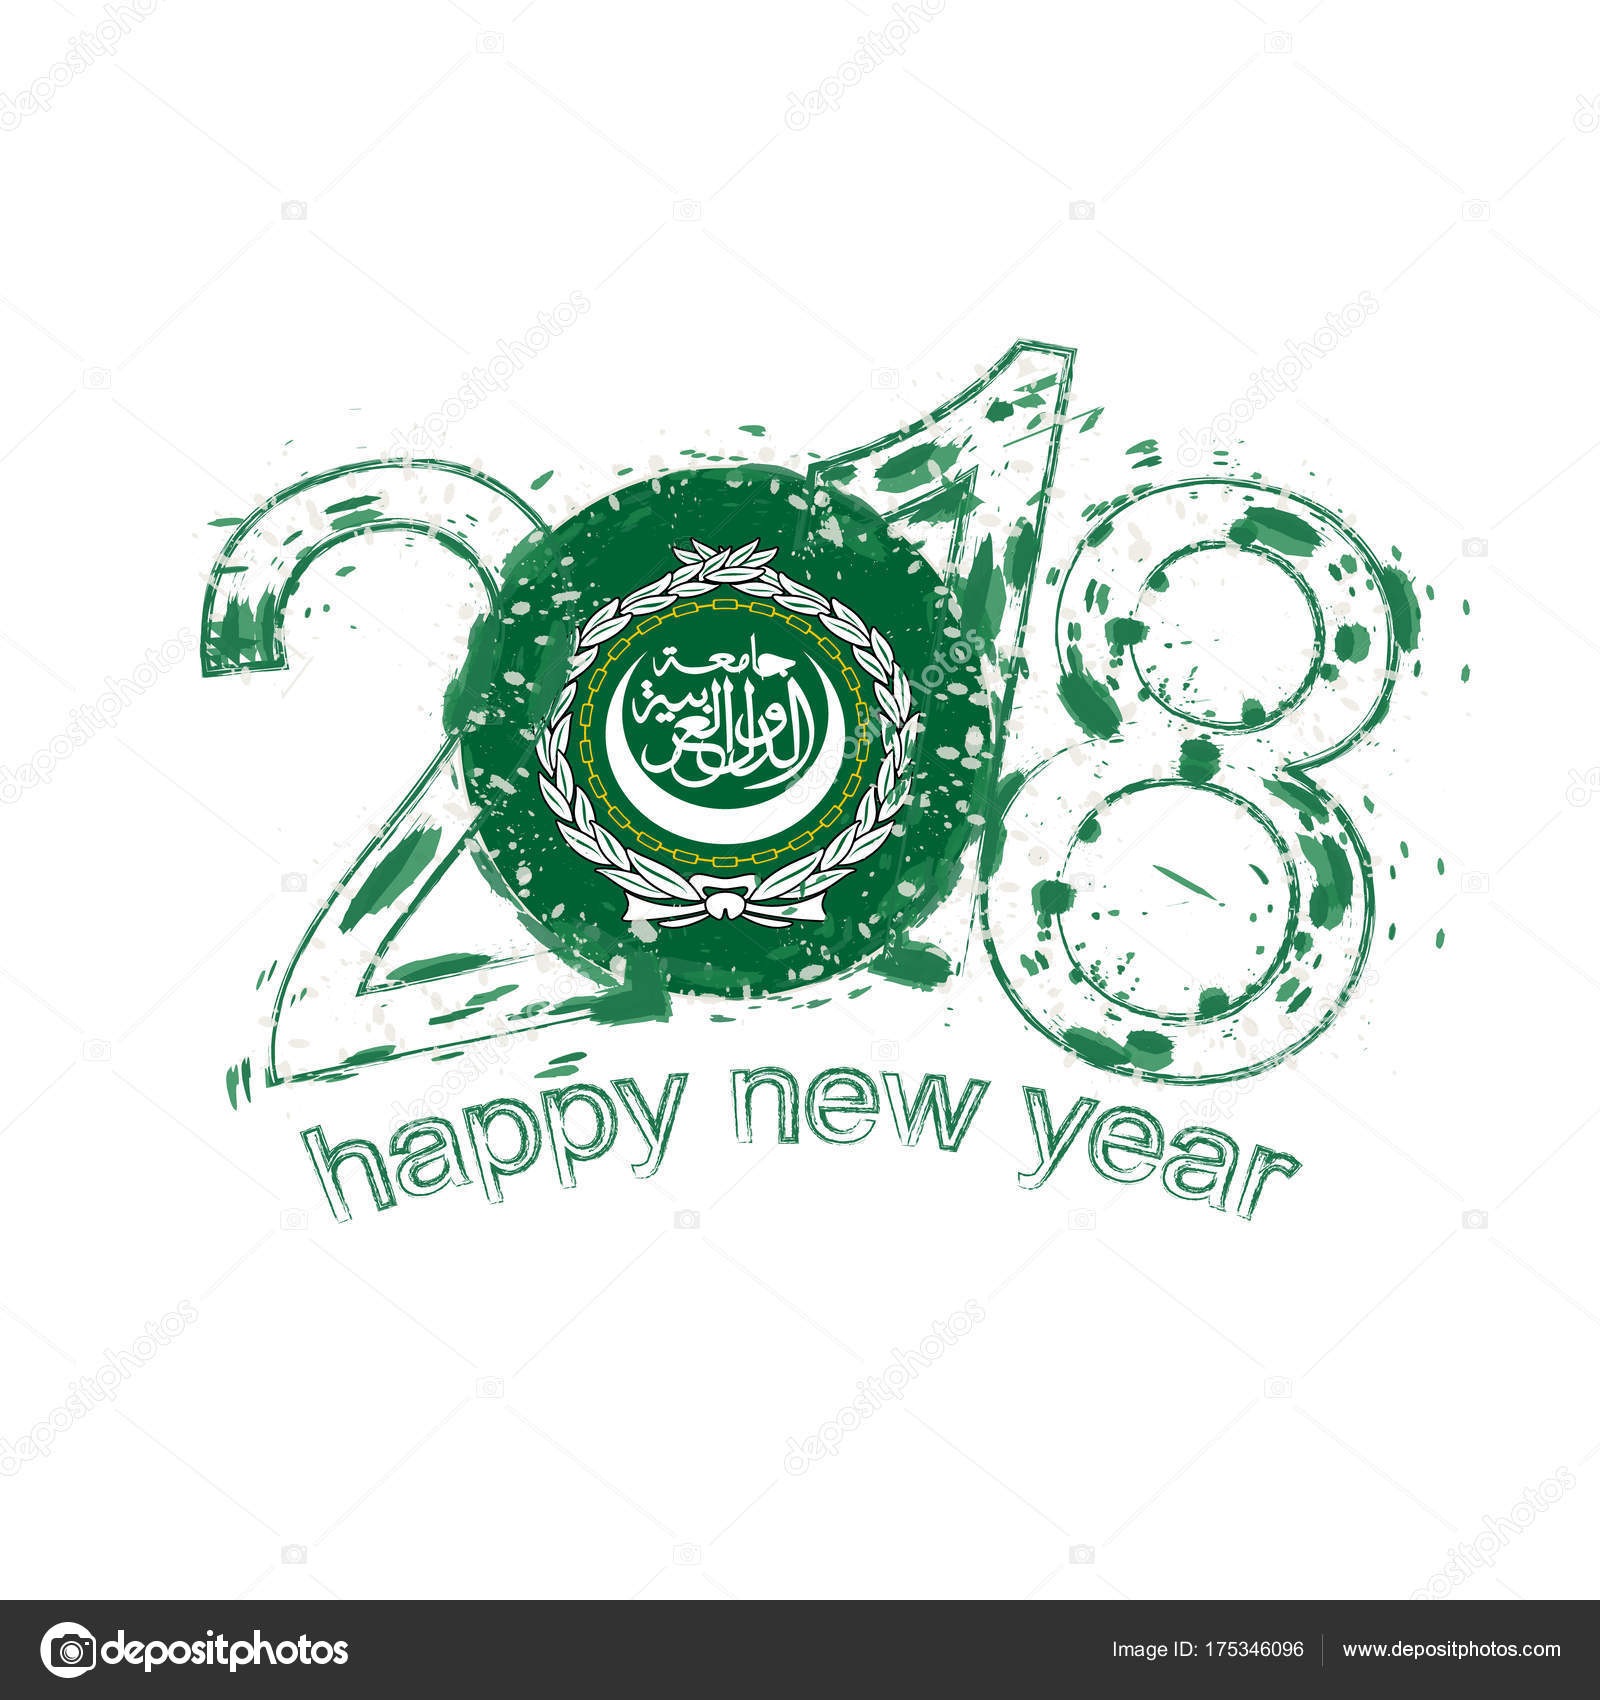 2018 happy new year arab league grunge vector template for greeting card calendars 2018 seasonal flyers christmas invitations and other